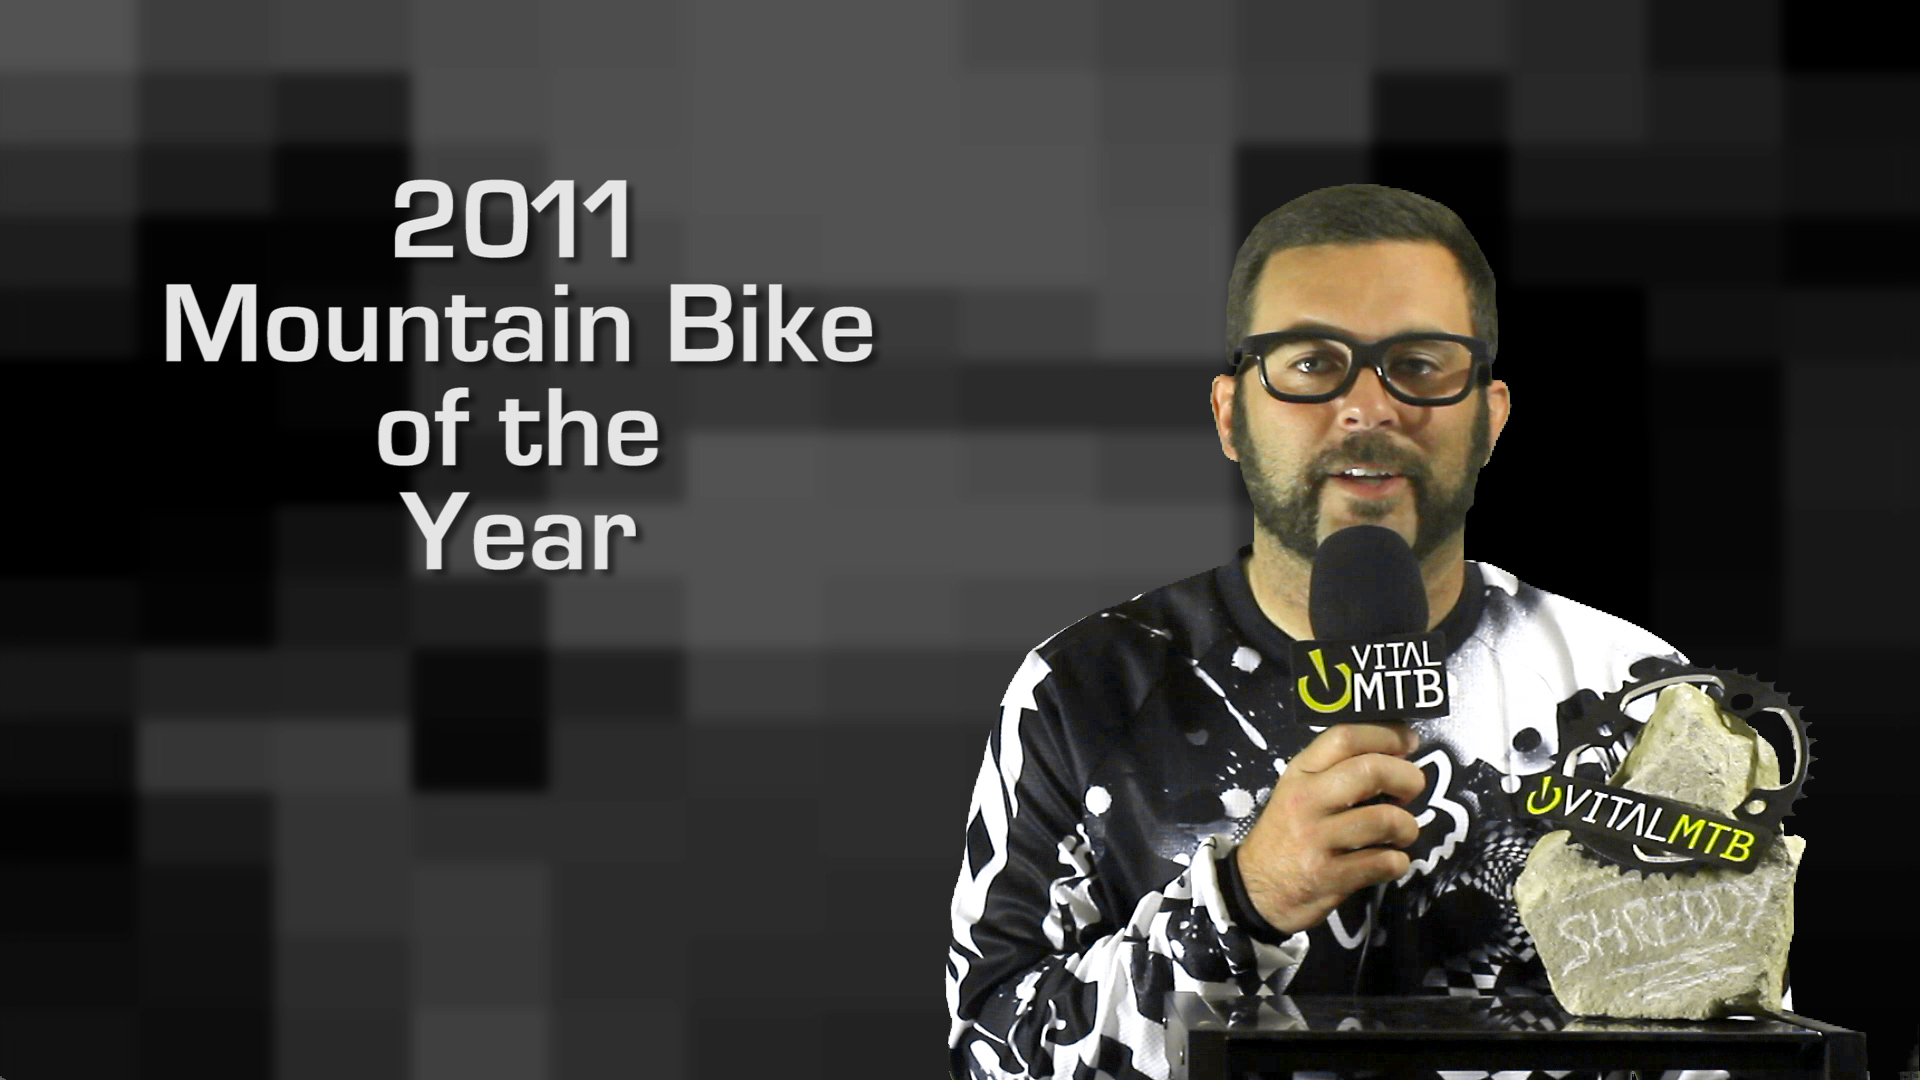 2011 Vital MTB Shreddy Awards - Mountain Bike of the Year